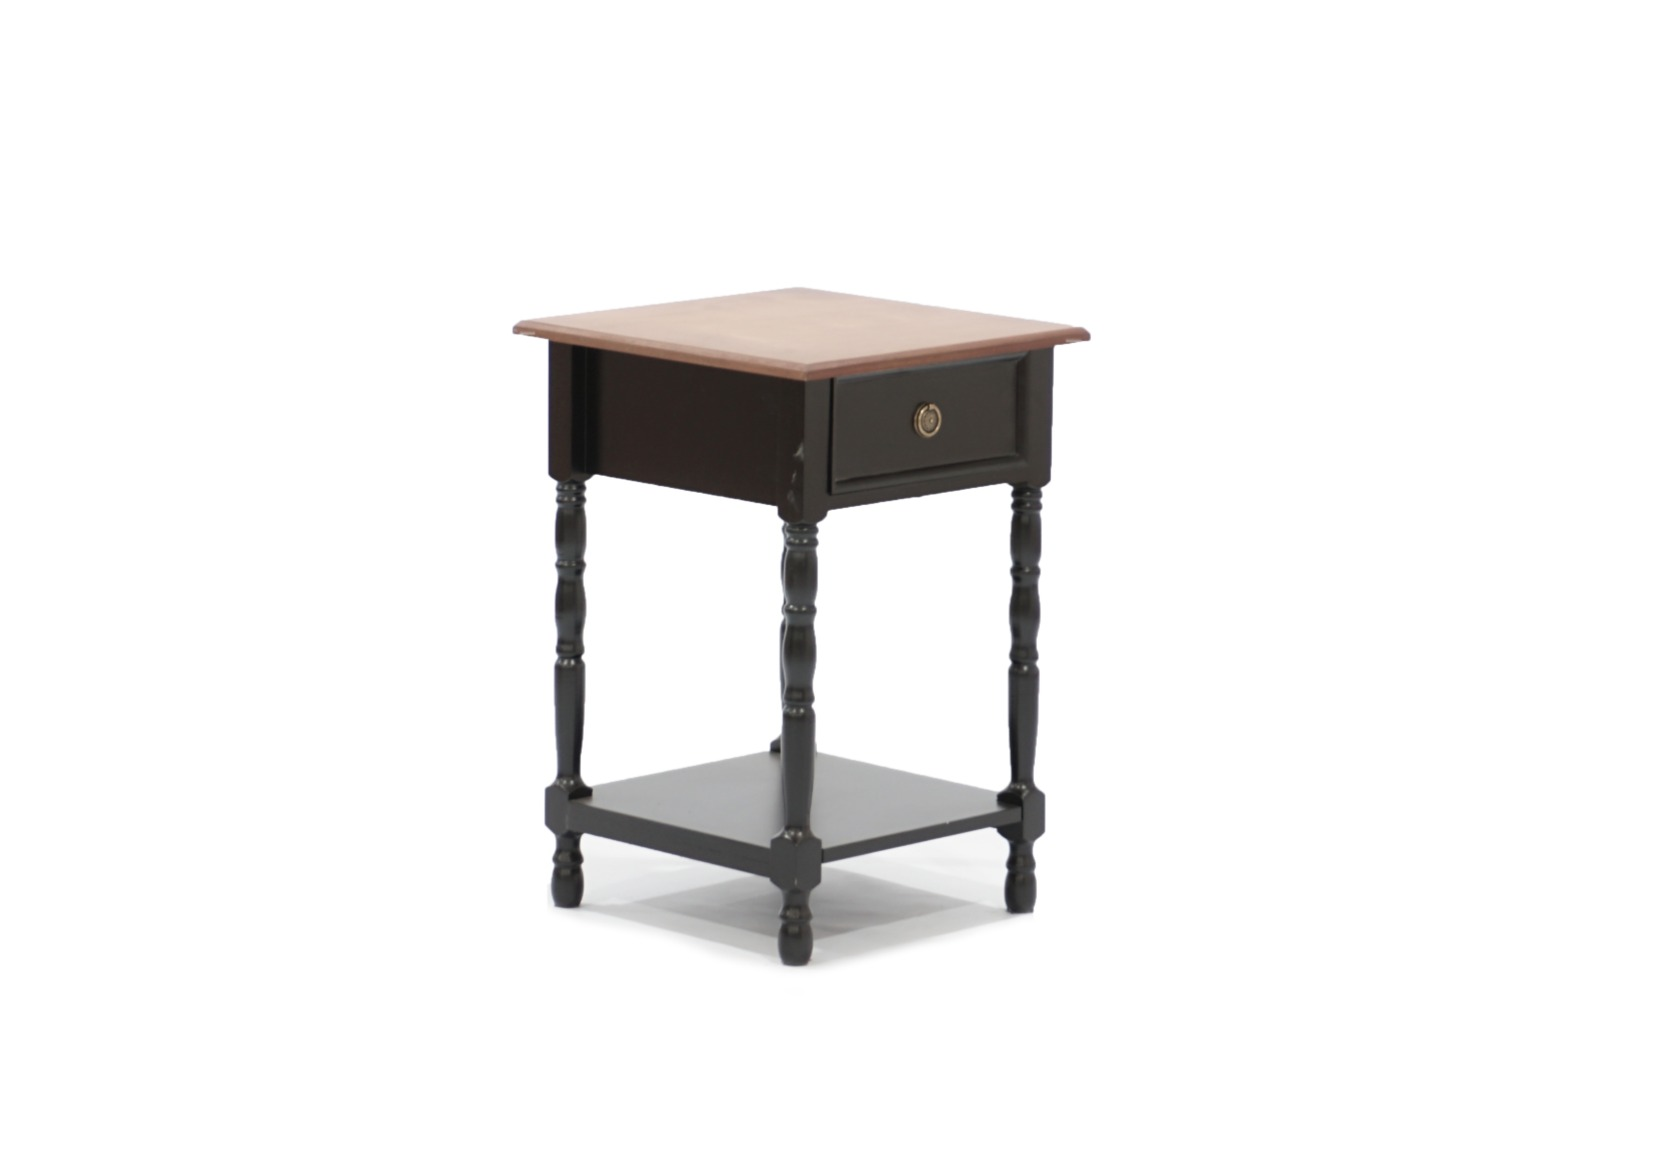 Era Colonila 1 Drawer Pedestal - LB&DFW